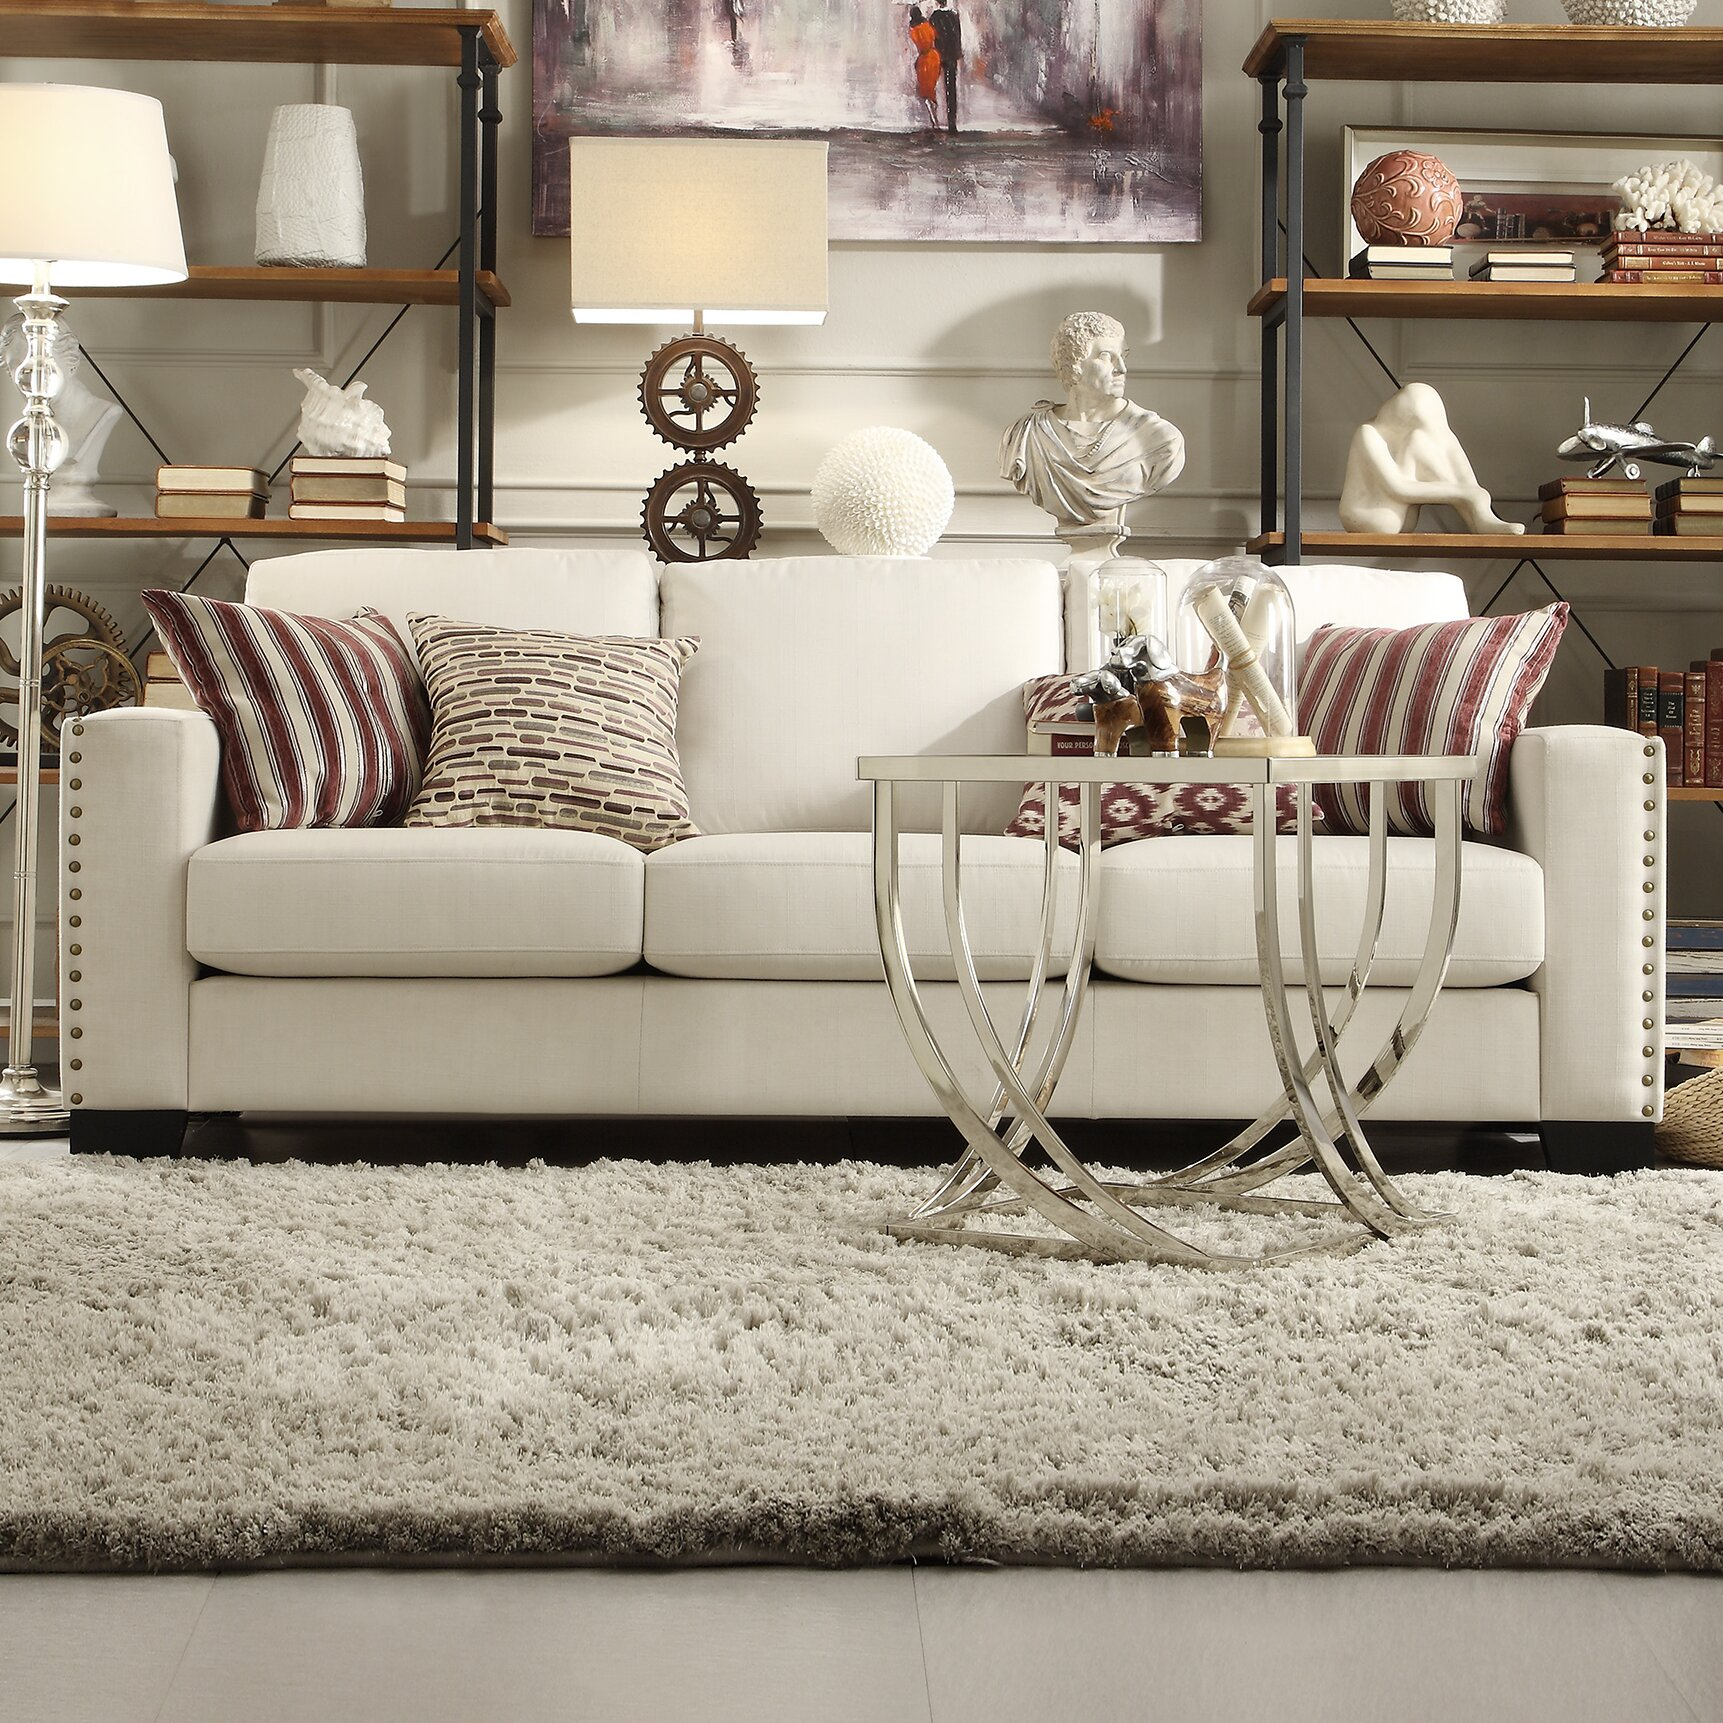 Kingstown Home Navarro Nailhead Trim Sofa & Reviews | Wayfair